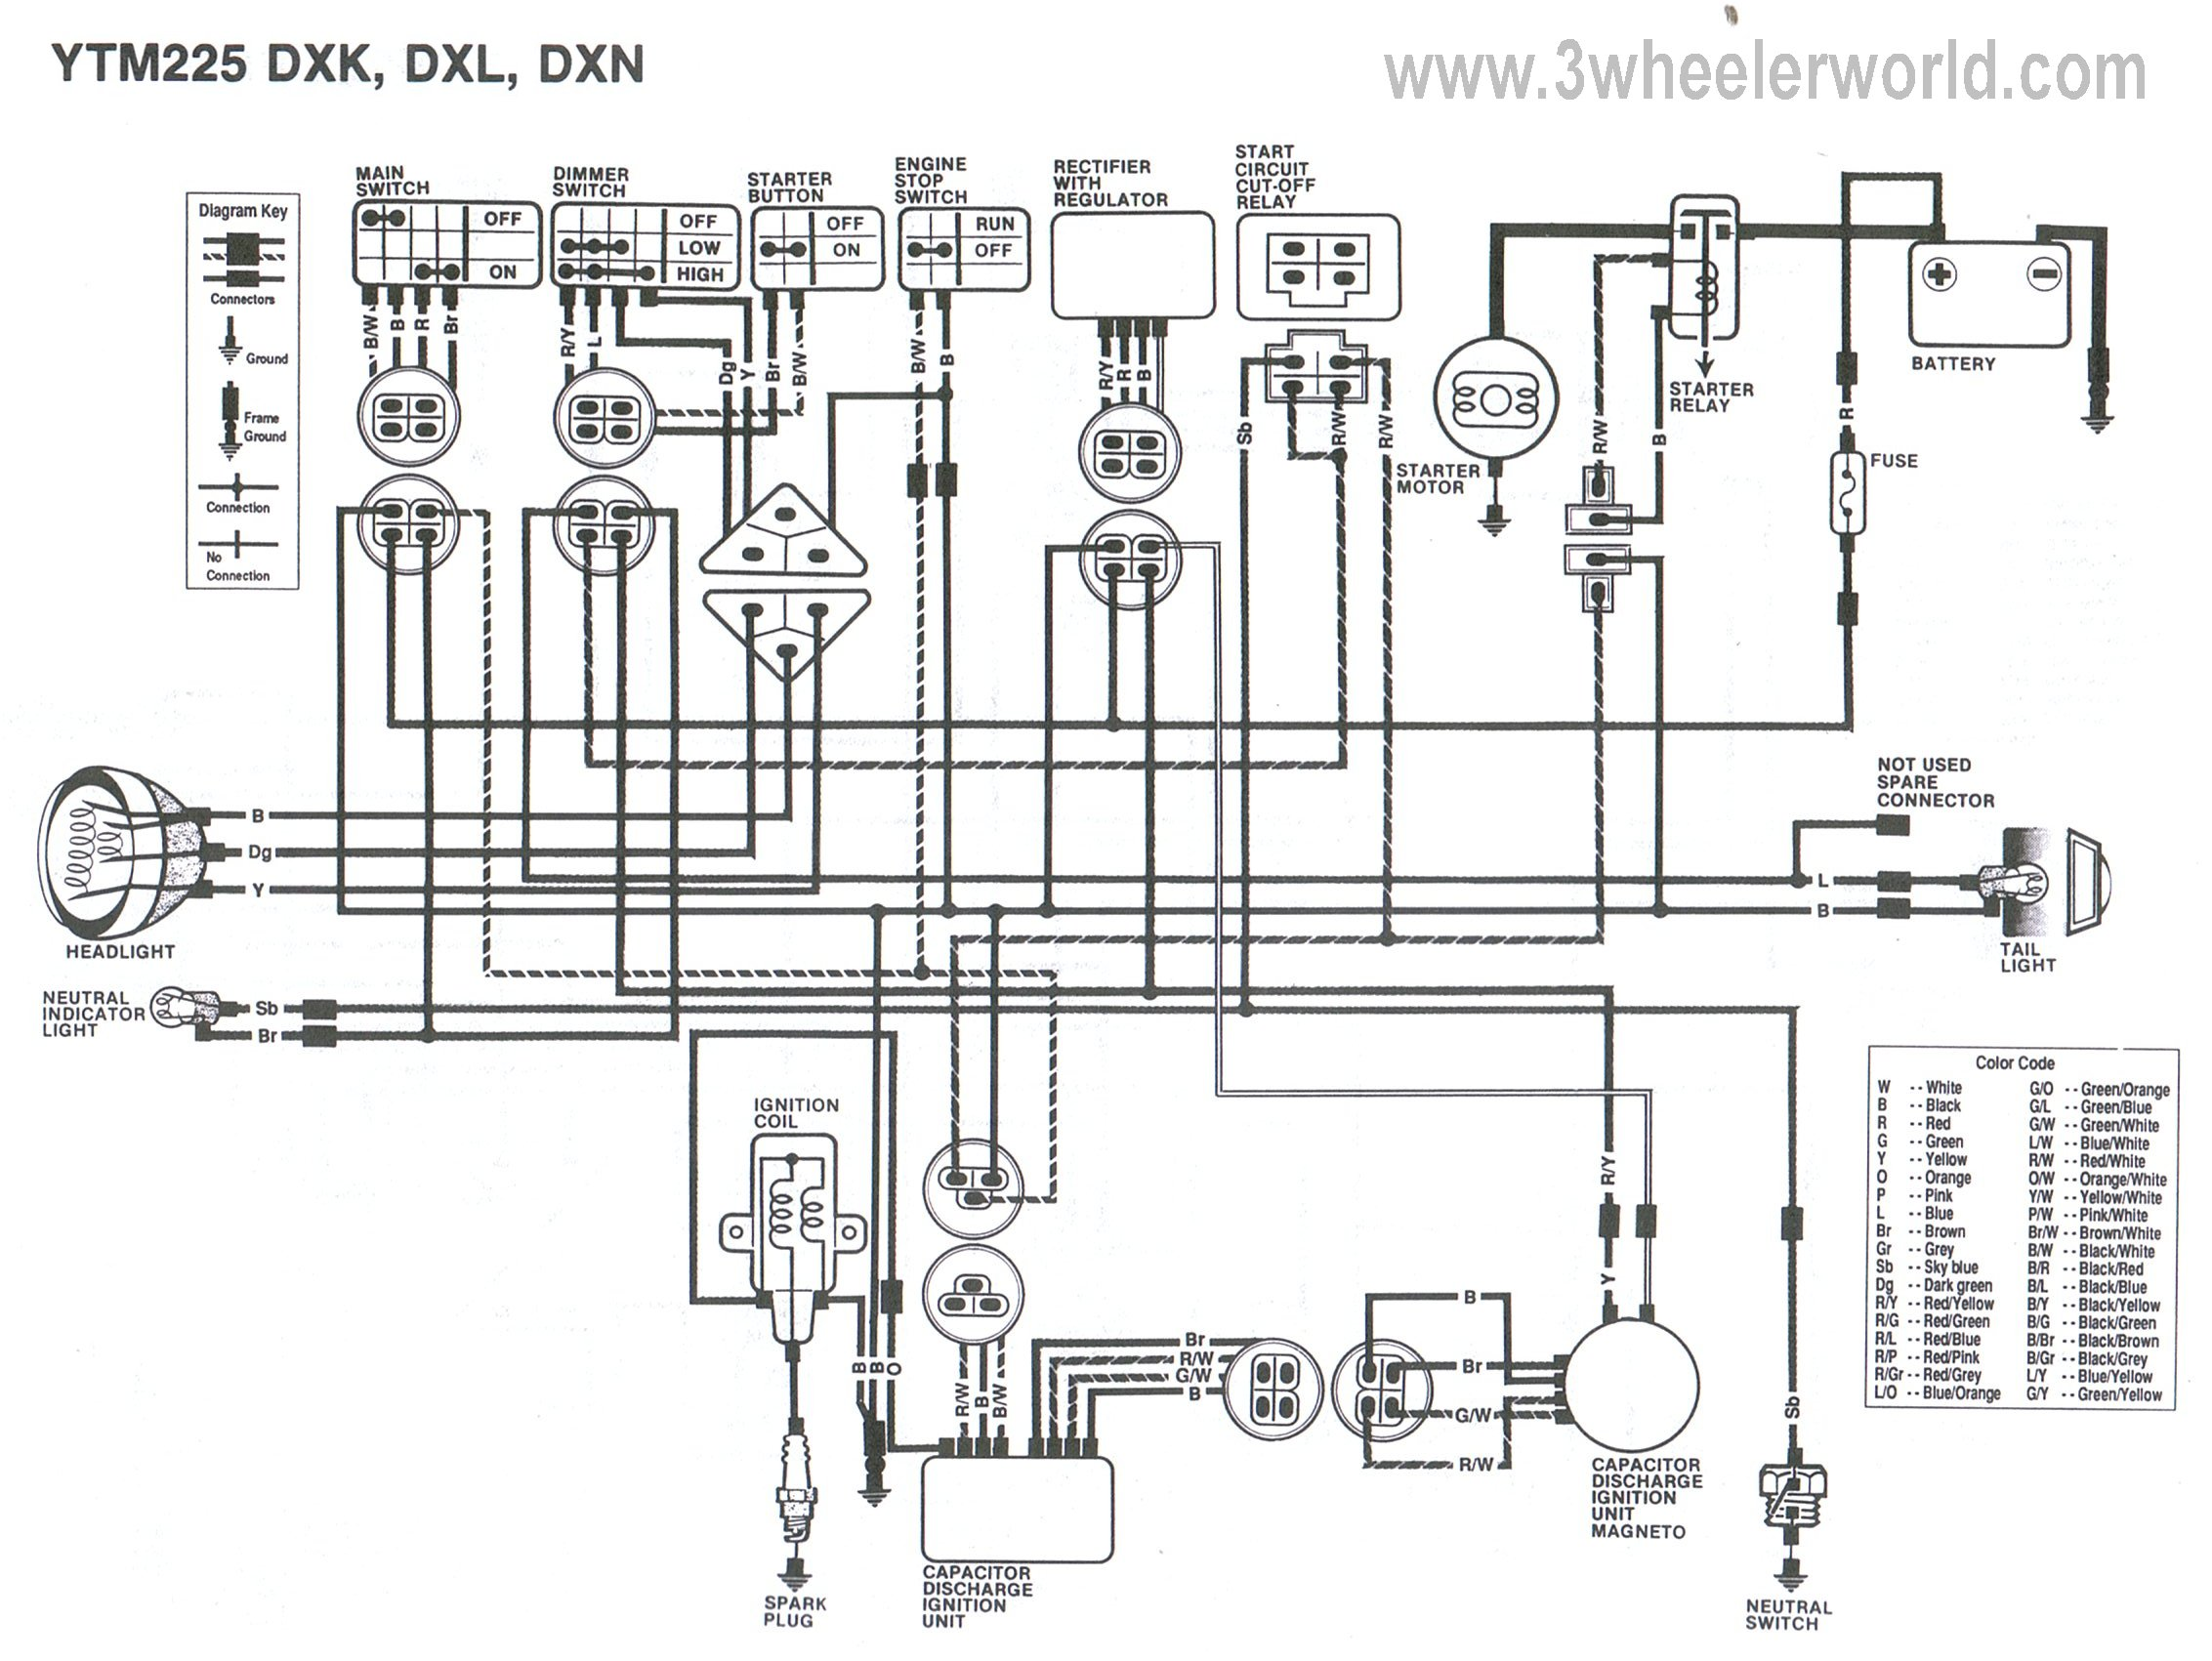 YTM225DXKDXLDXN 3 wheeler world tech help yamaha wiring diagrams yamaha moto 4 250 wiring diagrams at fashall.co